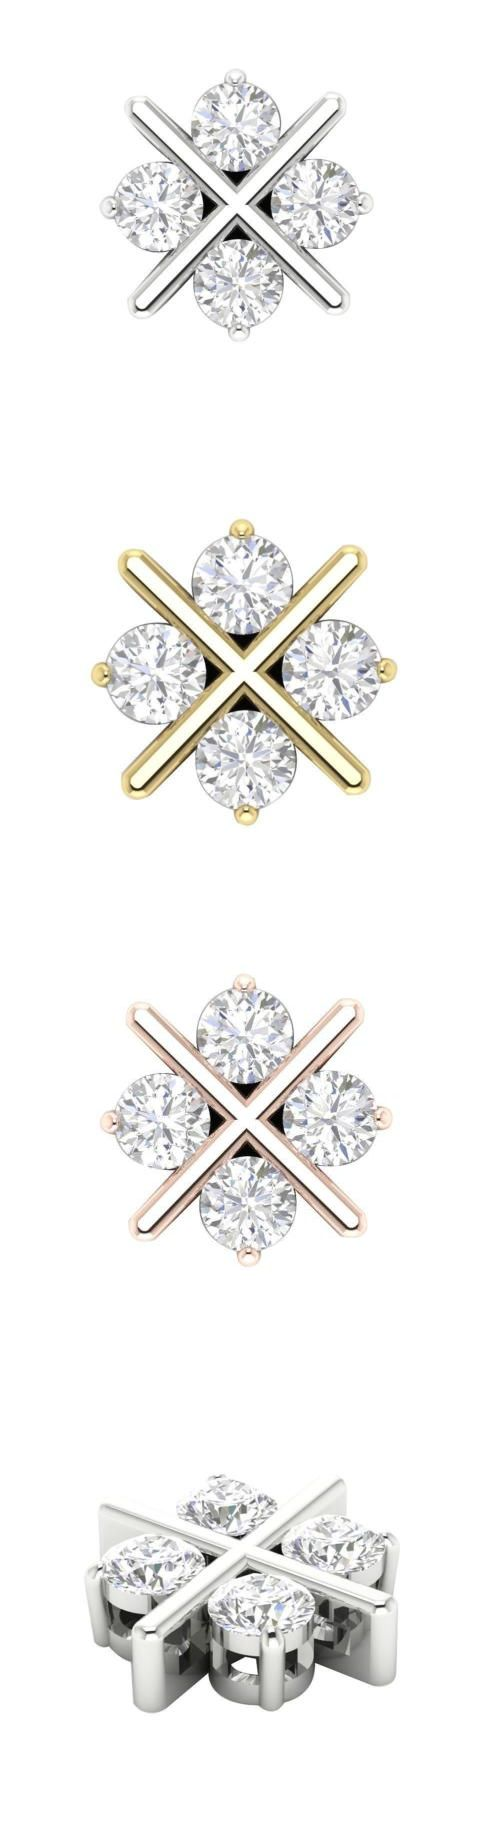 Diamond 164331: Genuine Diamond 1.00Ct Prong Set Fashion Pendant Necklace 14Kt Solid Yellow Gold -> BUY IT NOW ONLY: $661.67 on eBay!